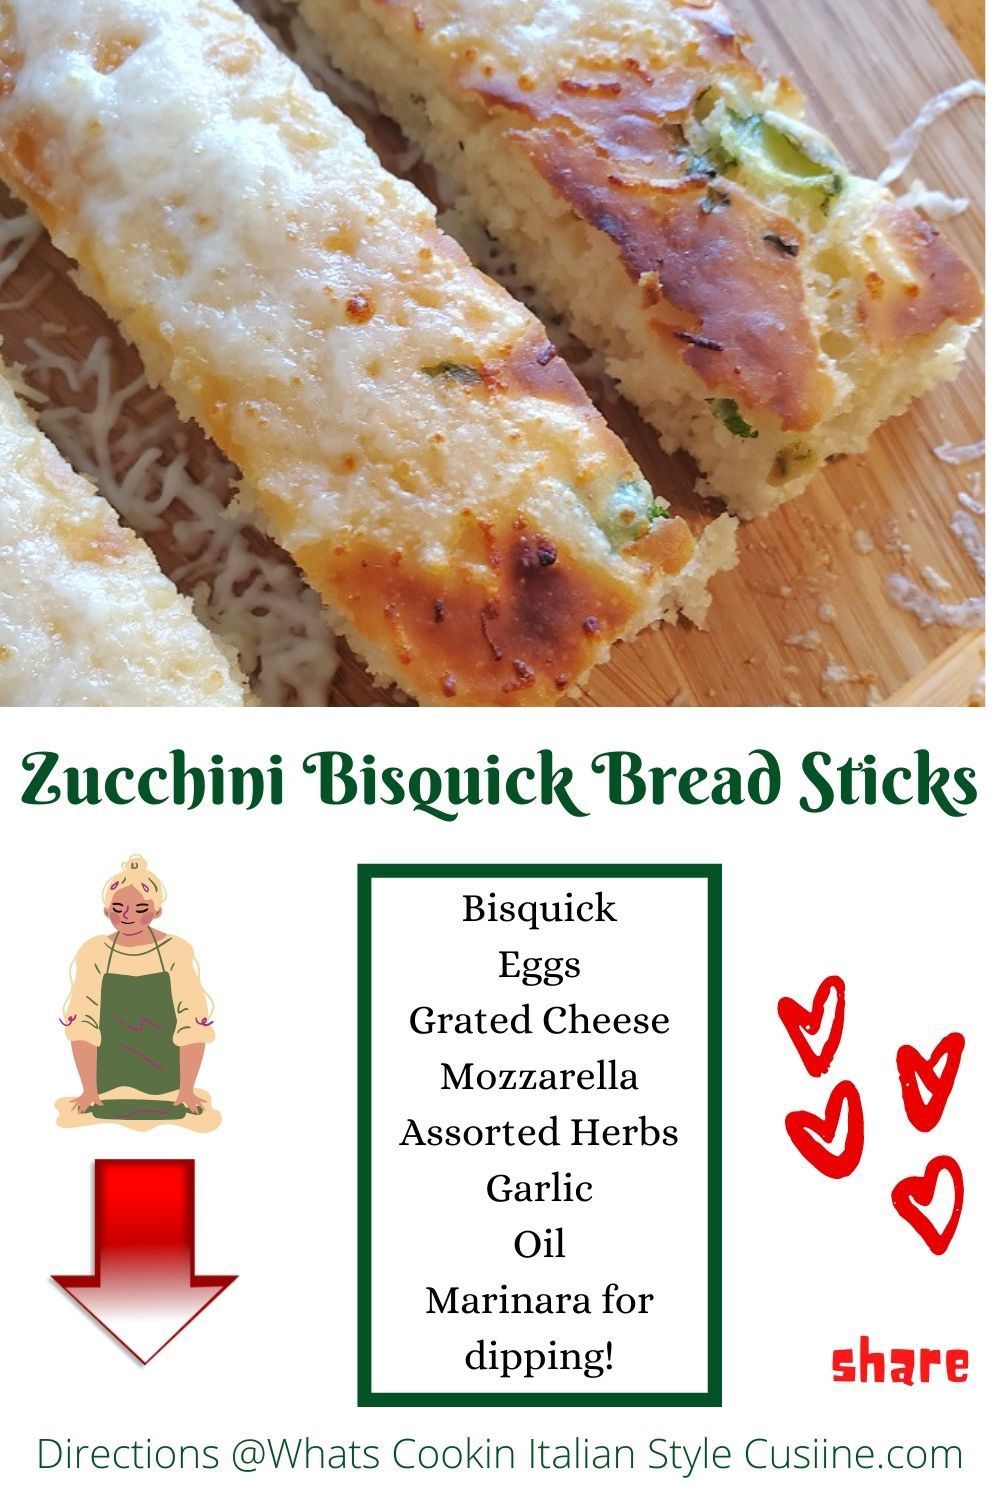 breadstick with zucchini and how to make them pin for later